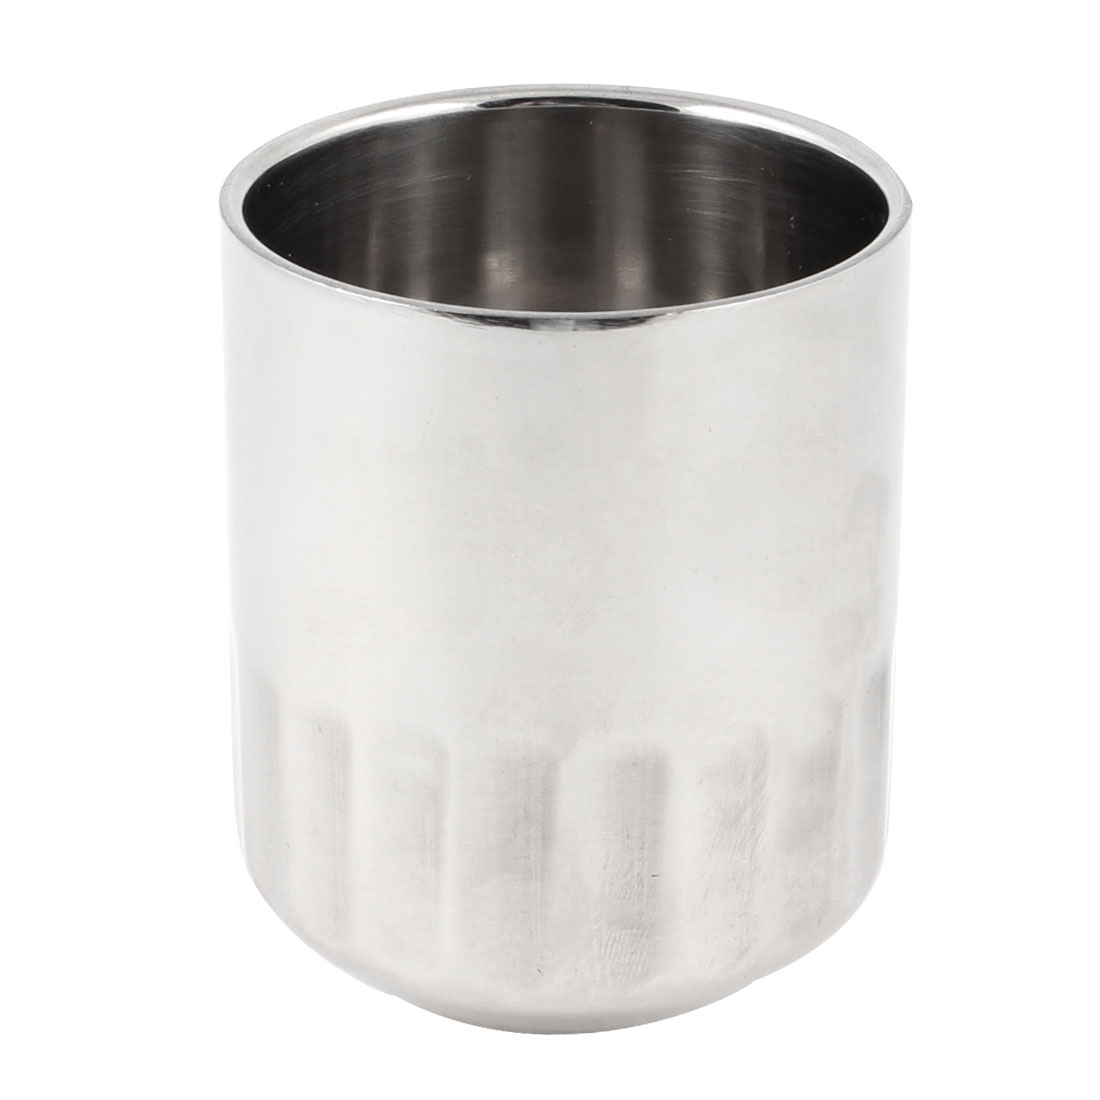 "Silver Tone Stainless Steel 260ml Capacity 3.1"" Height Water Drinking Cup Mug"